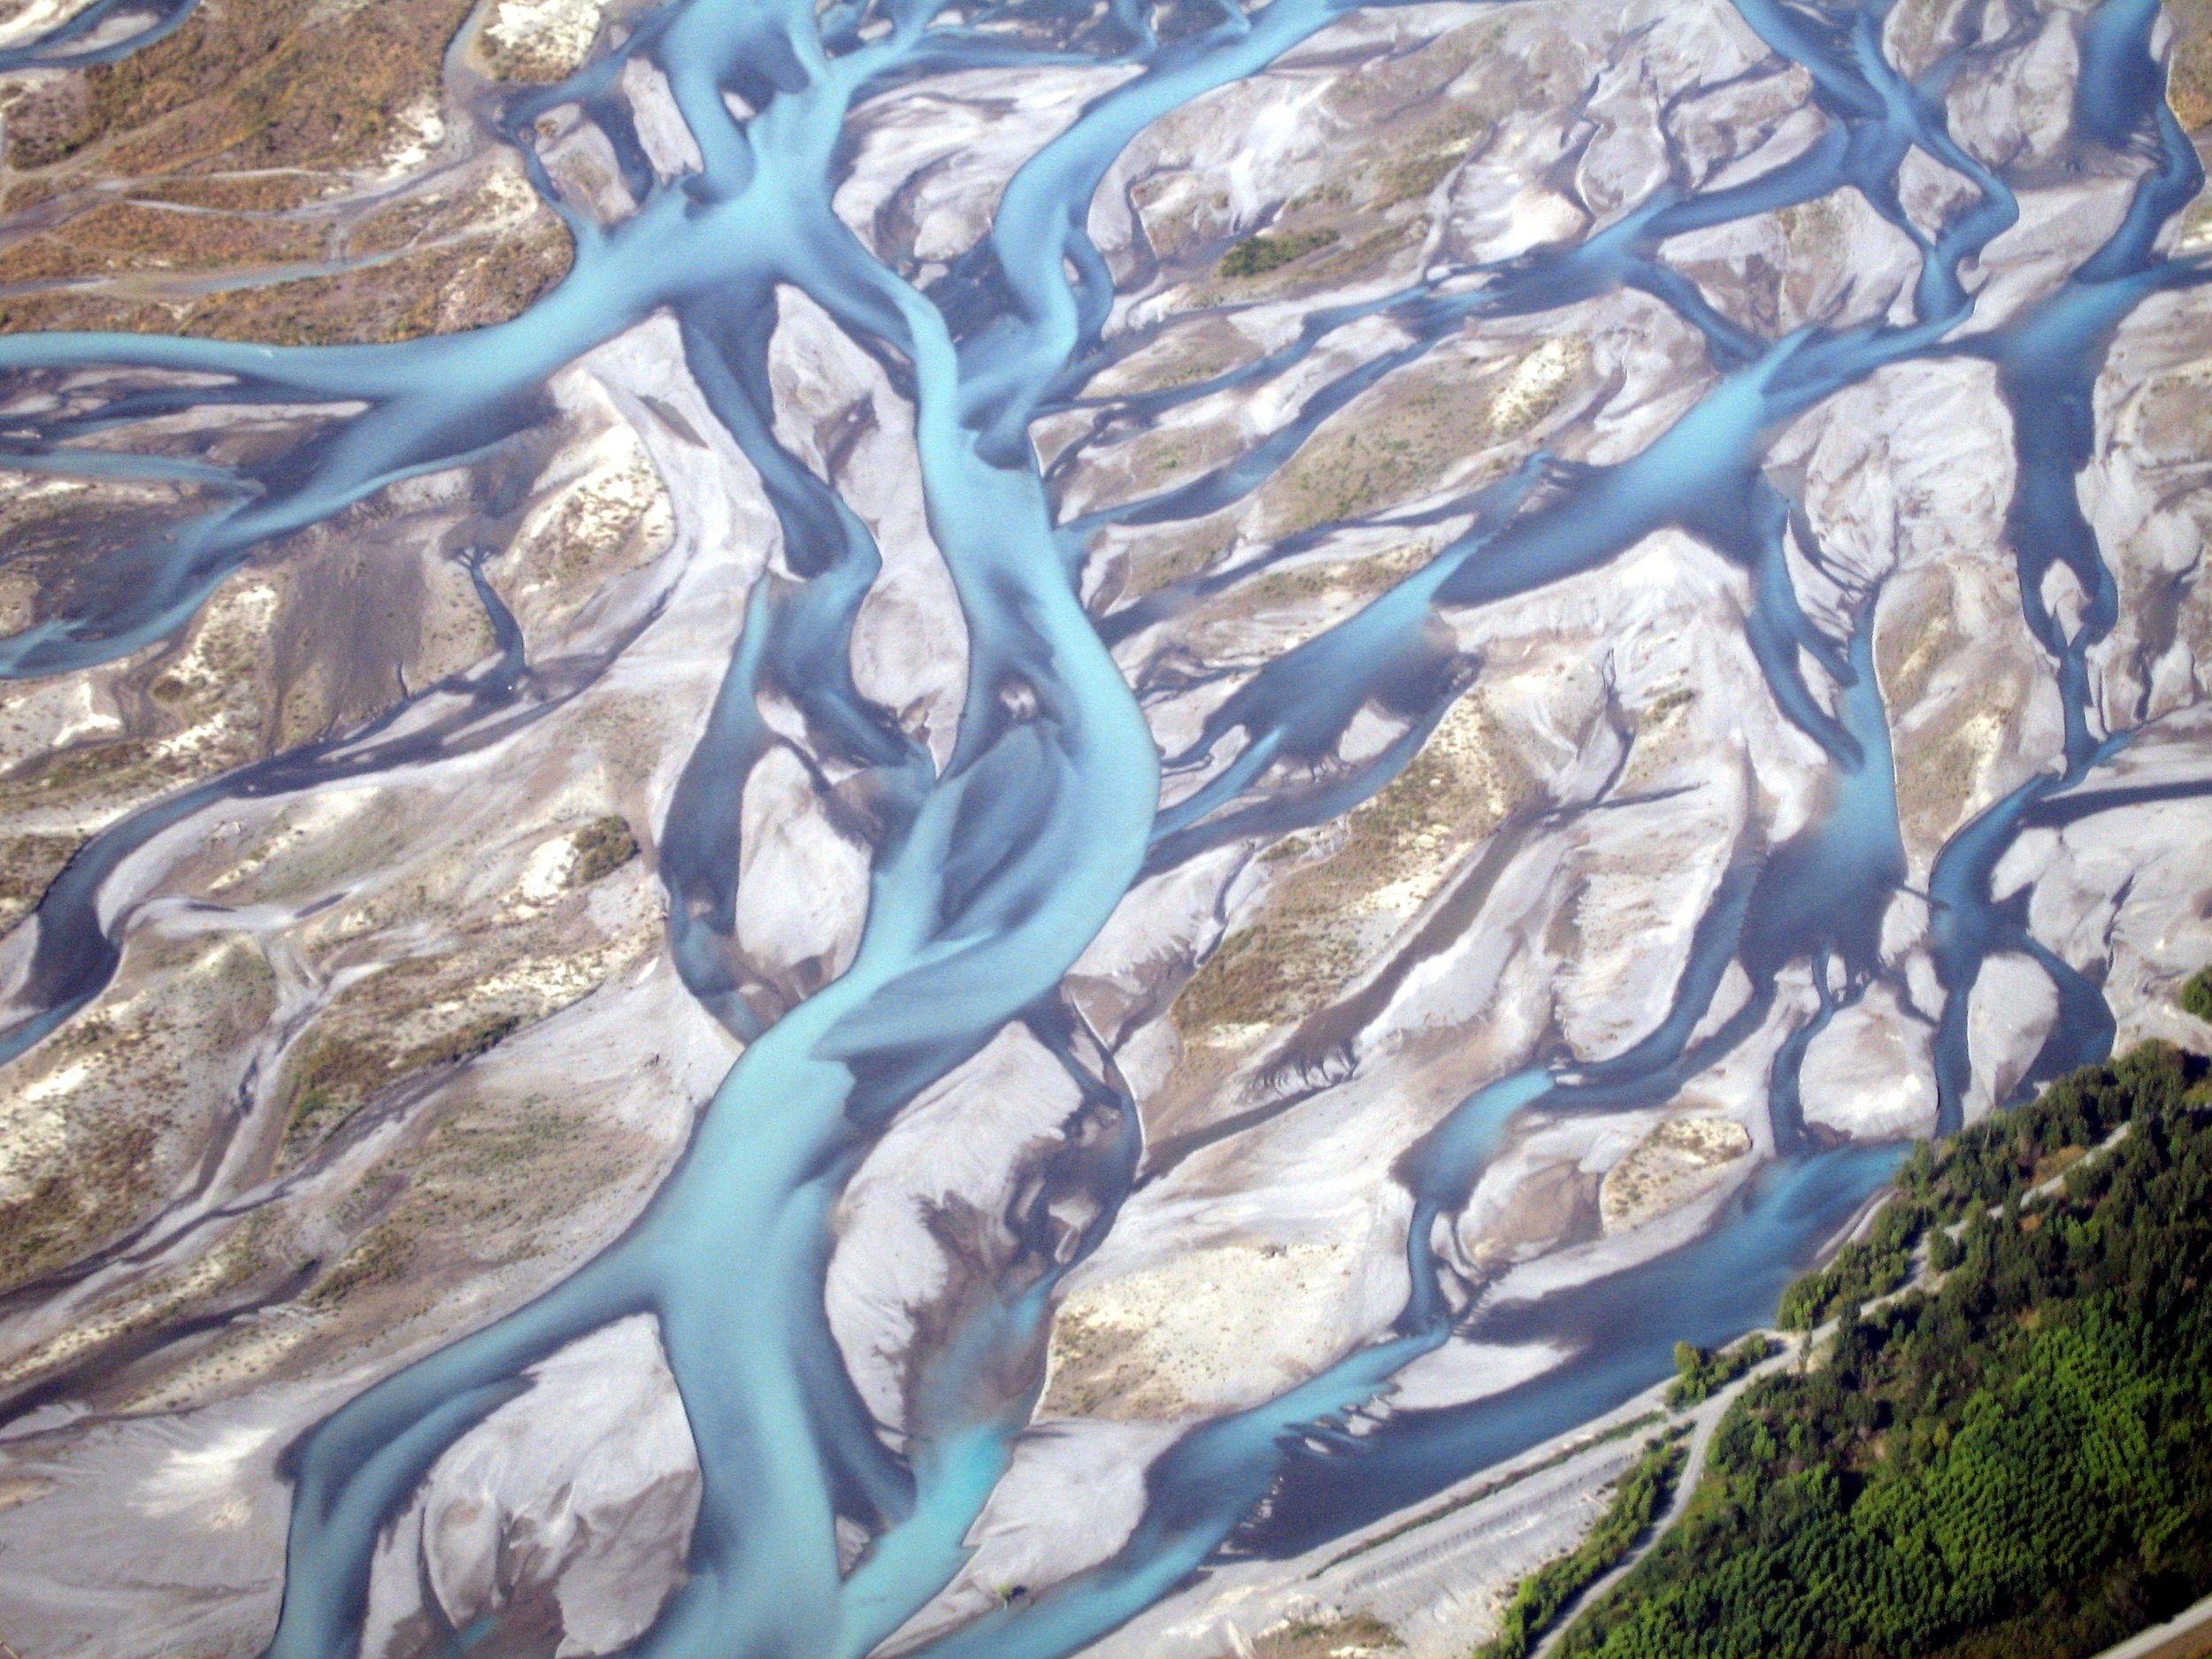 Rakaia River: an example of a braided river, where wrybills breed.  Image by Geoff Leeming (CC BY-NC 2.0).